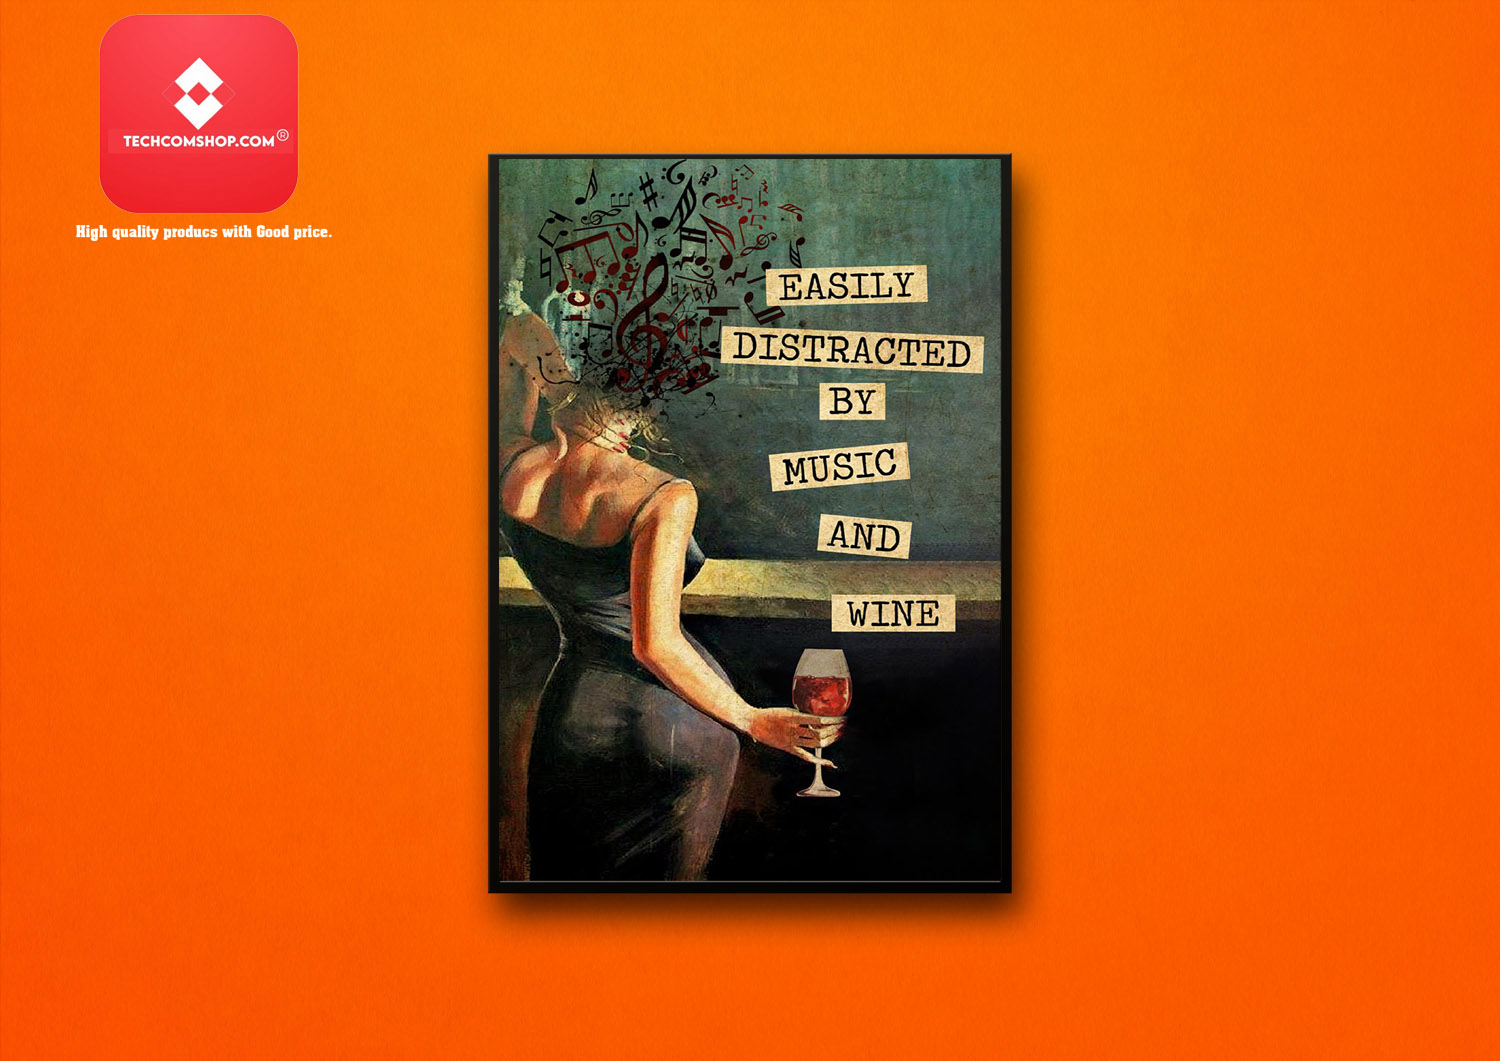 Girl vintage easily distracted by music and wine poster 8